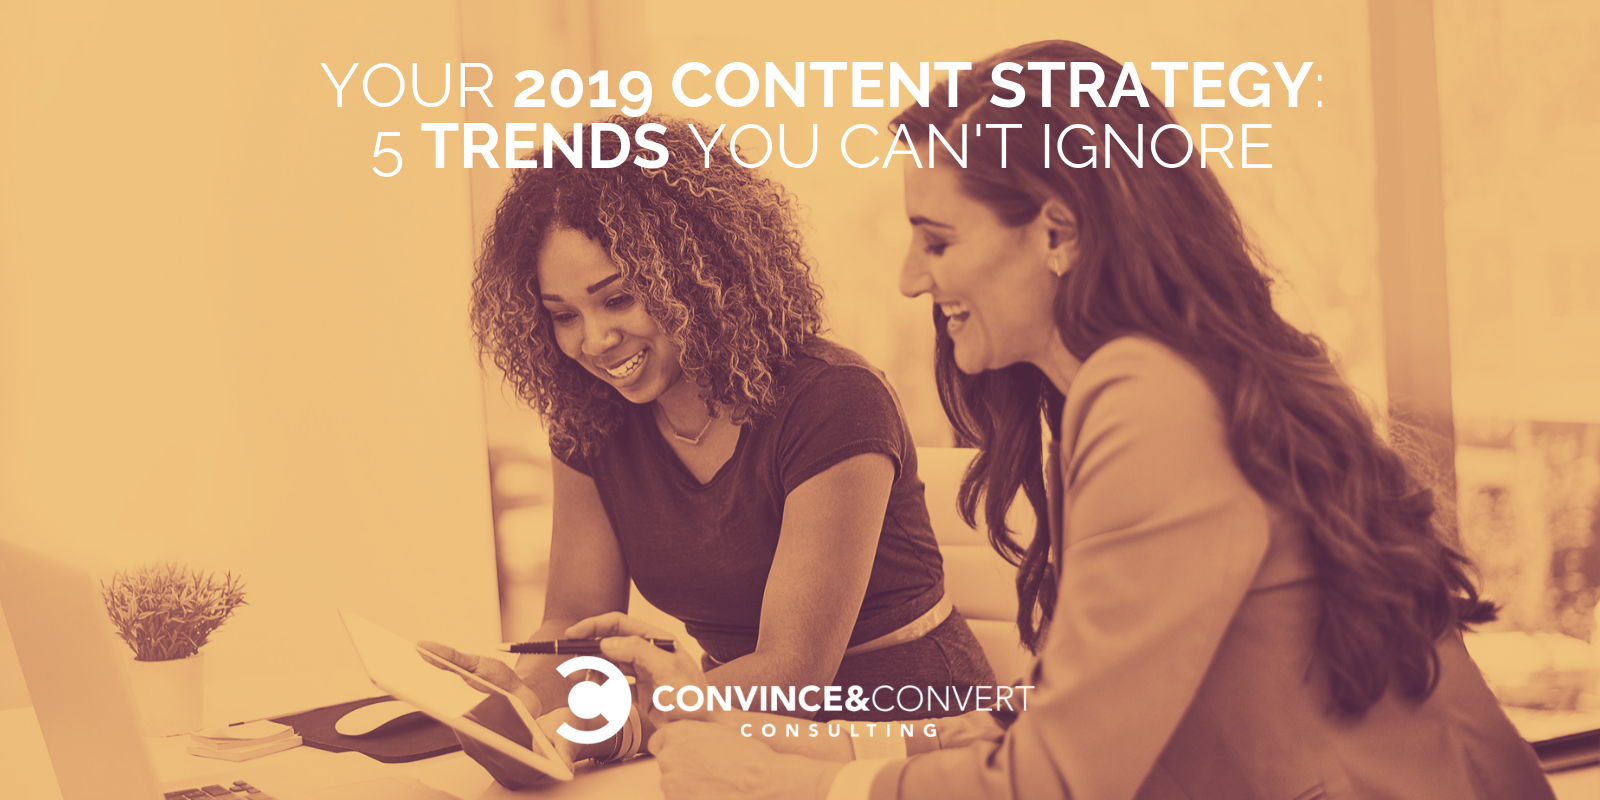 Your 2019 Content Strategy: 5 Trends You Can't Ignore